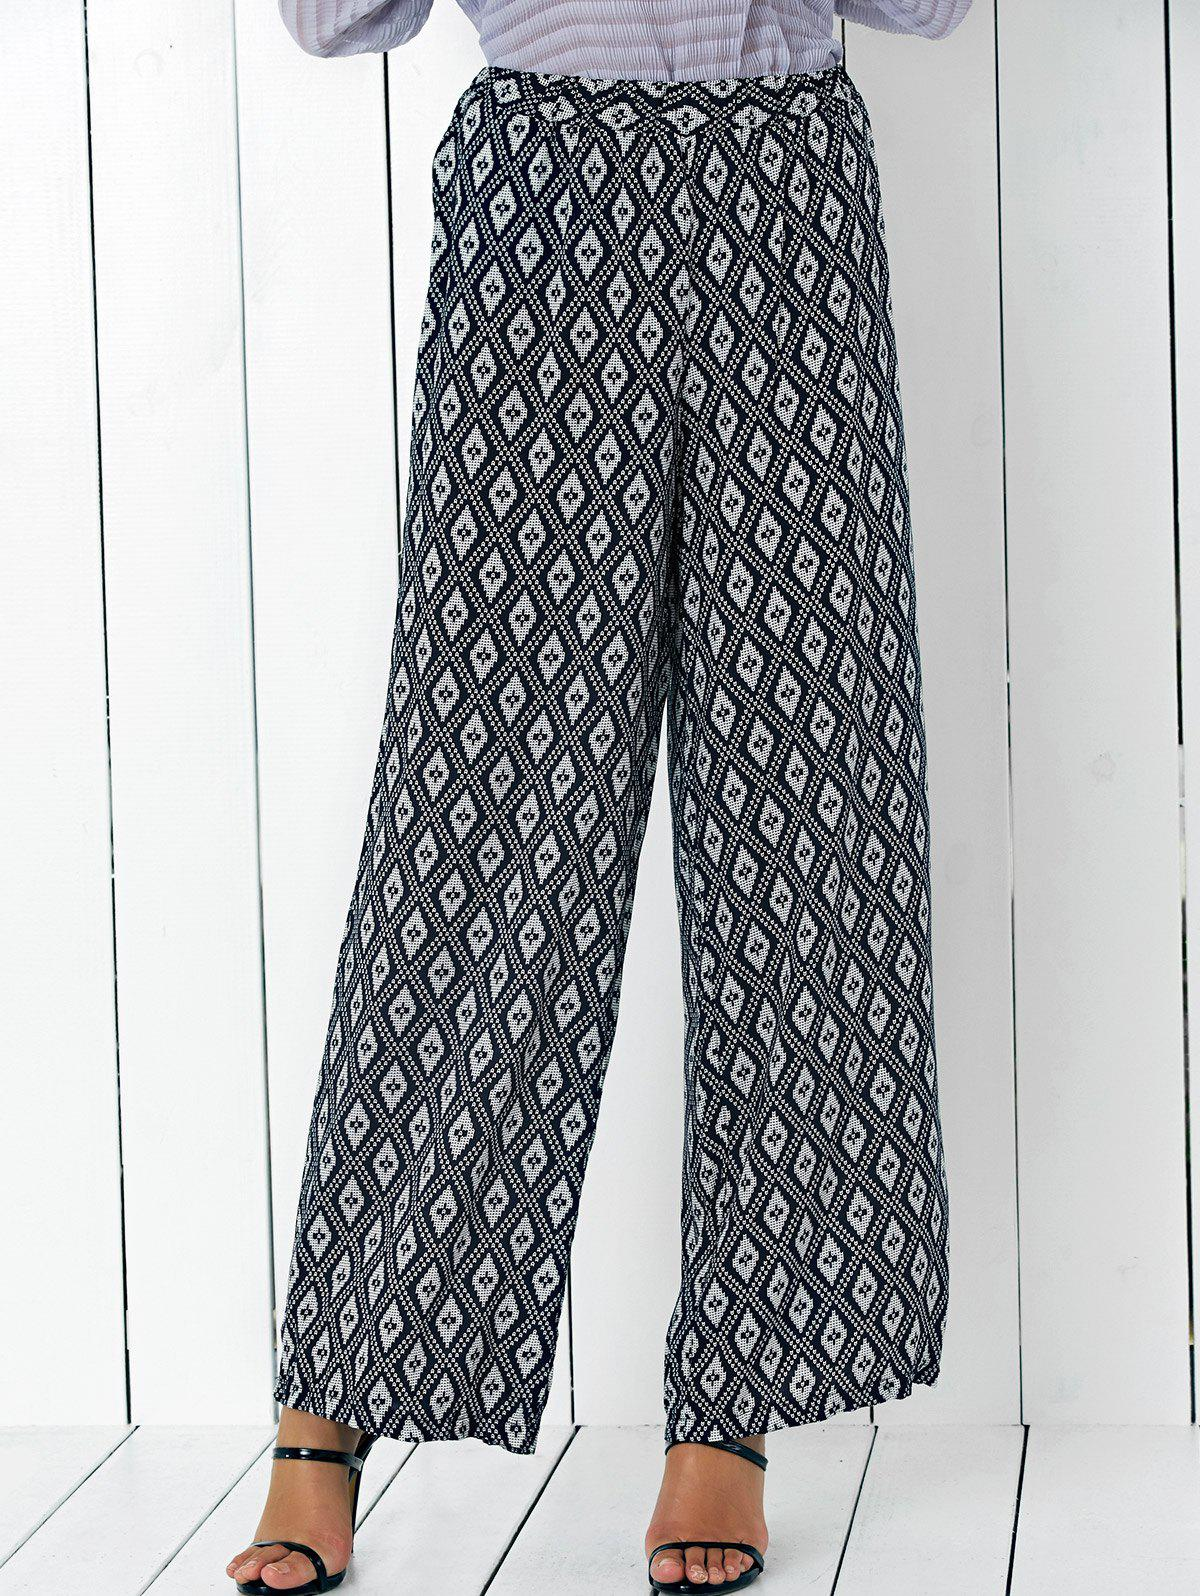 High Waisted Argyle Patterned Palazzo Pants - WHITE/BLACK L